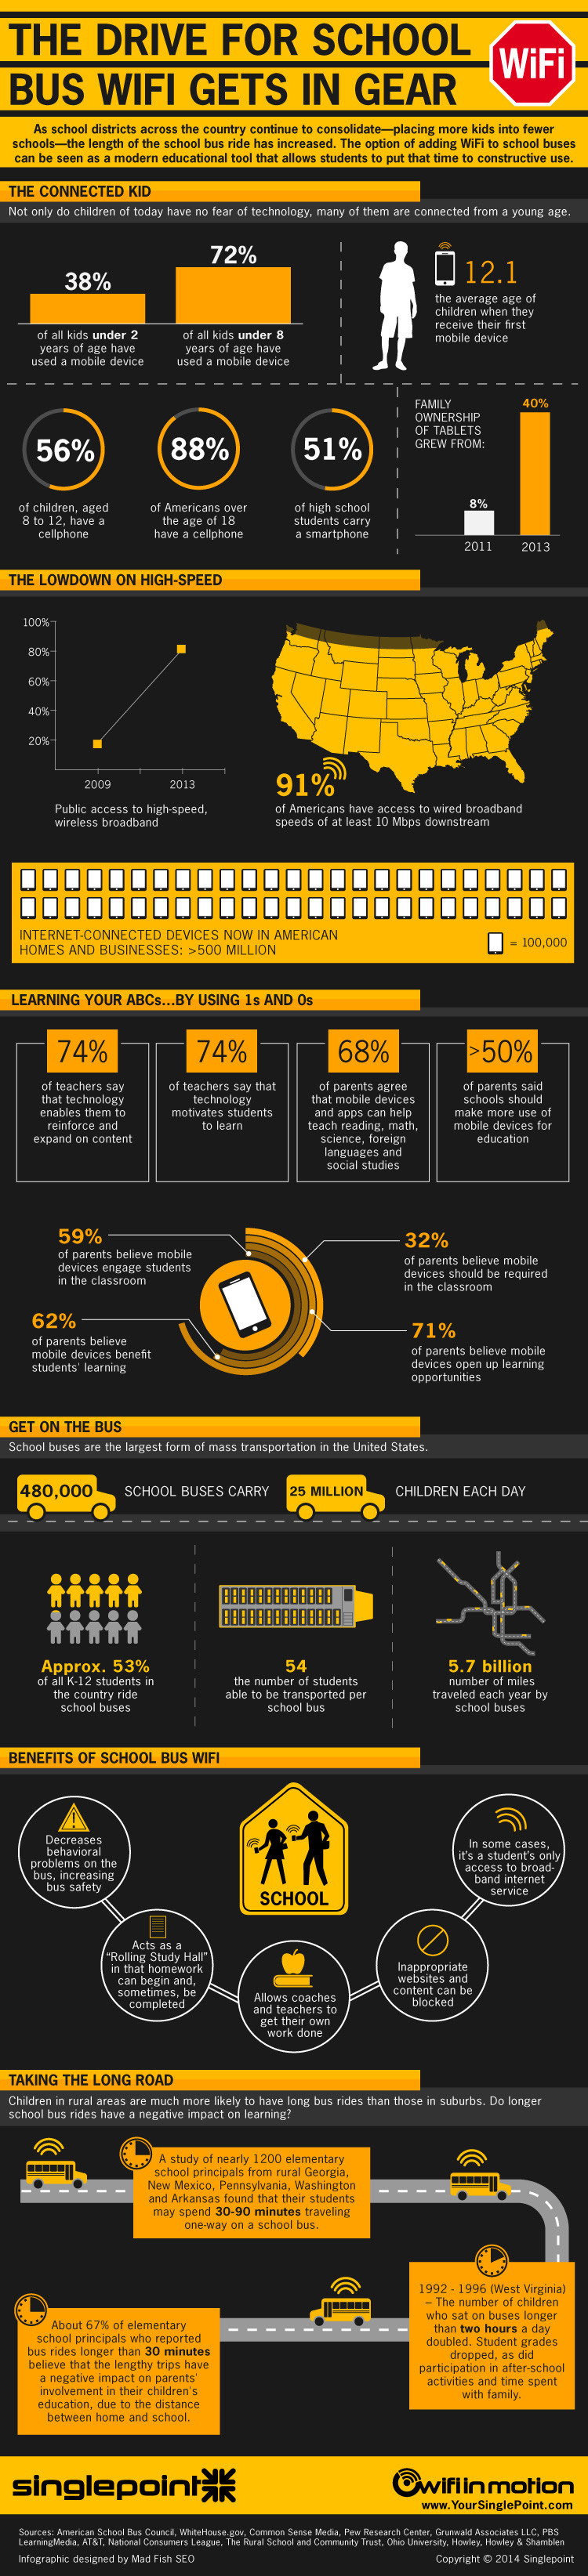 Infographic: The Drive for School Bus Wifi Gets in Gear